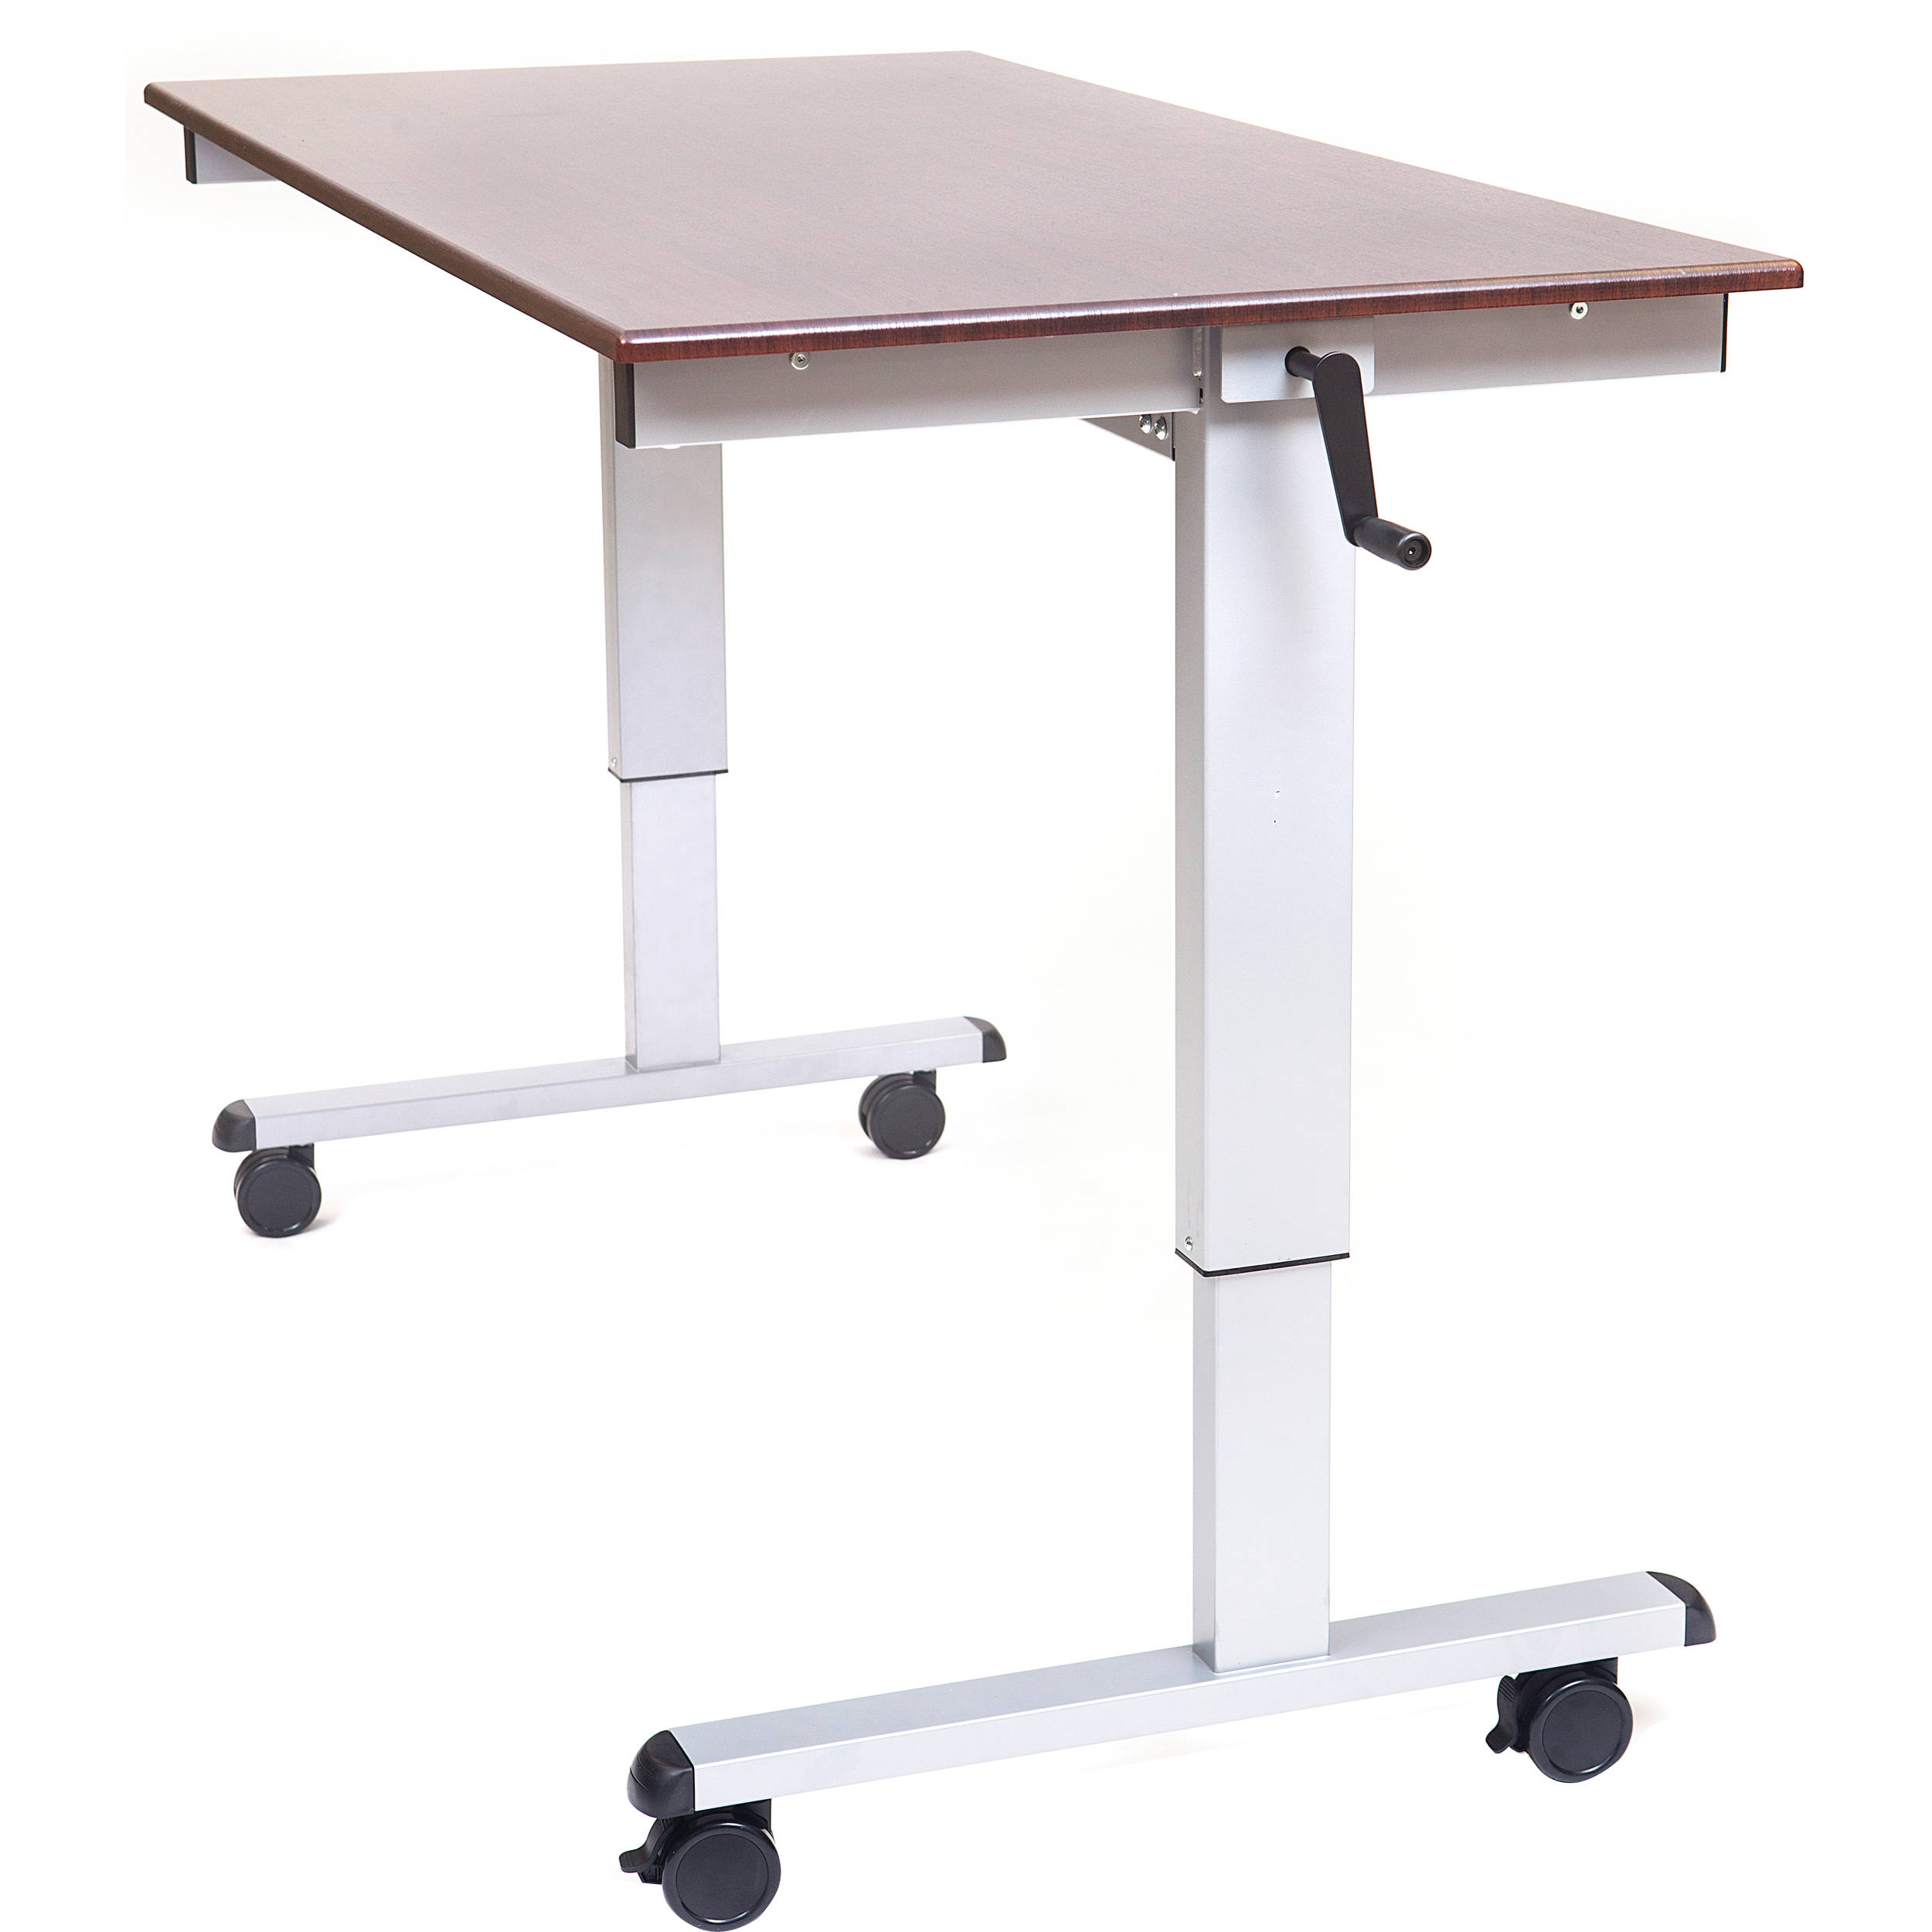 free desk overstock inch standup garden silver stand product today adjustable luxor shipping crank dw home up